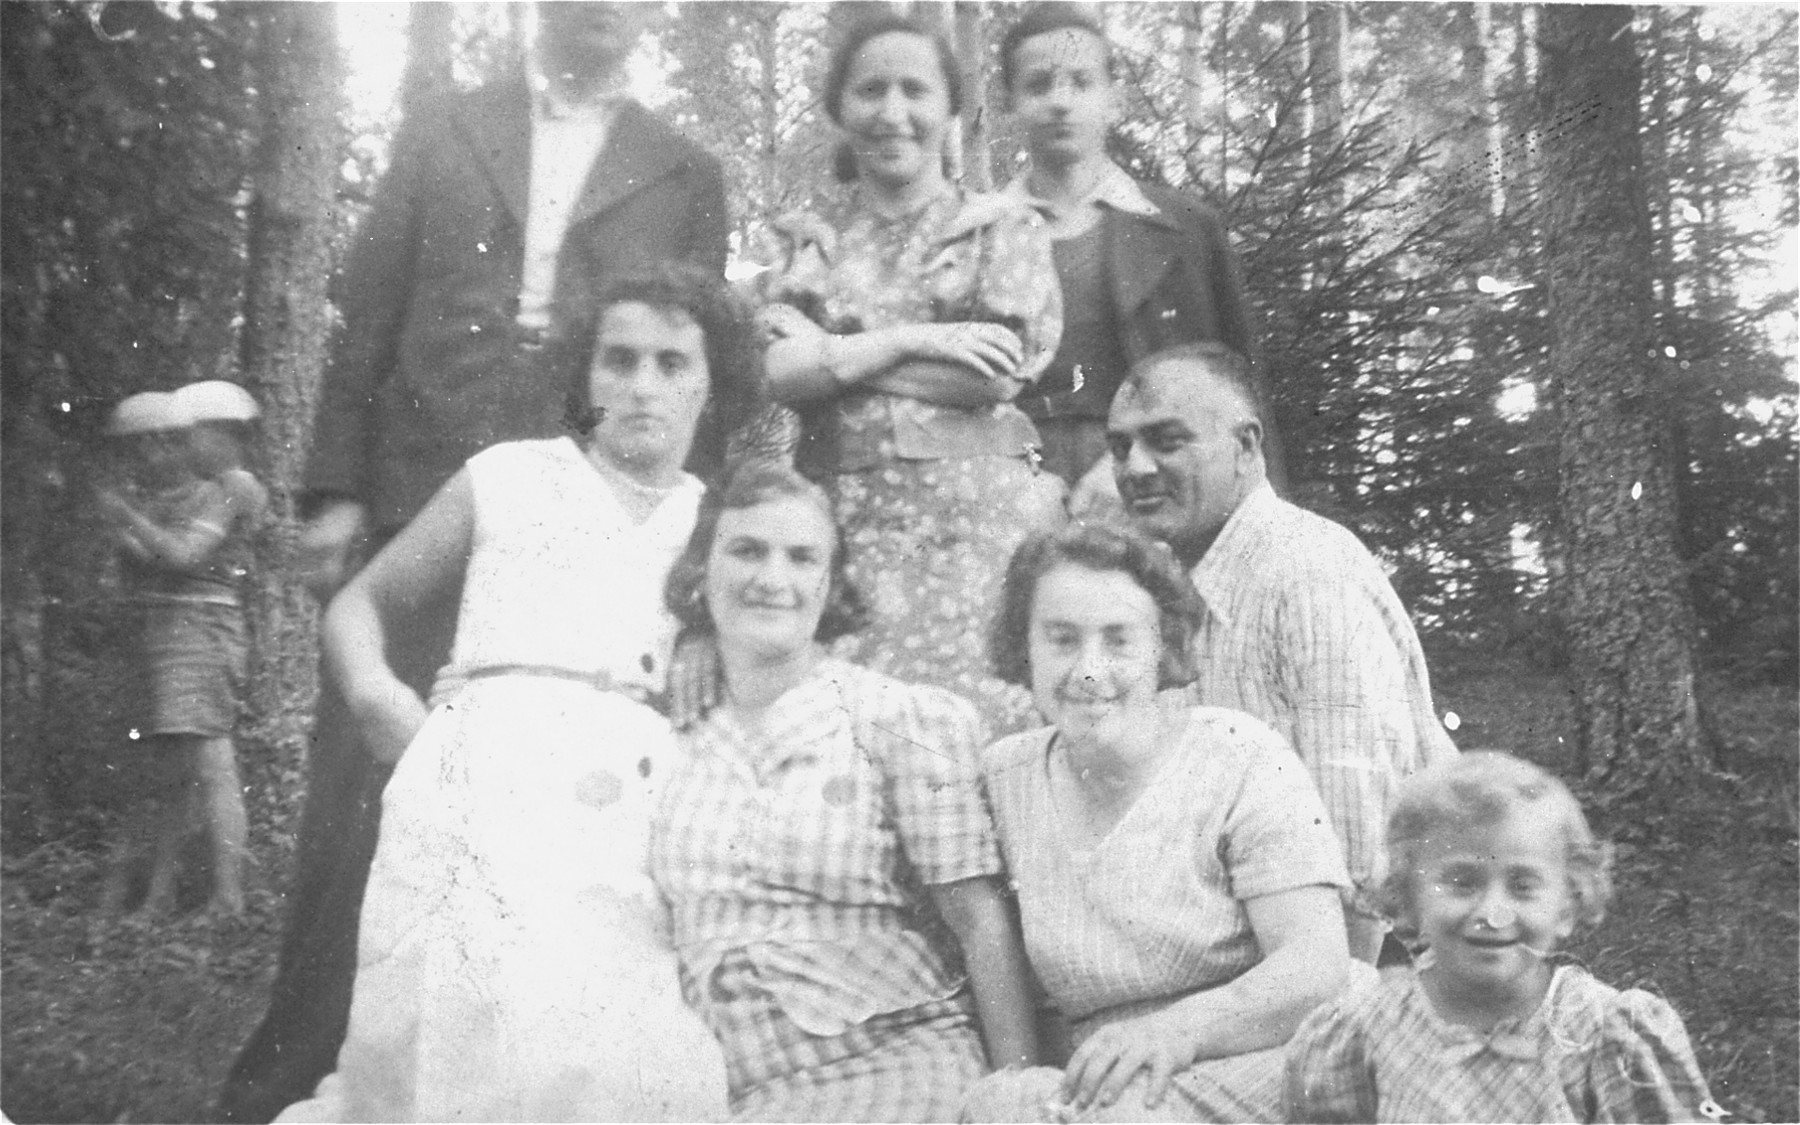 Friends and relatives of a Jewish family from Sejny pose for a group portrait in the woods.  Pictured are relatives of the Szczupacki family.